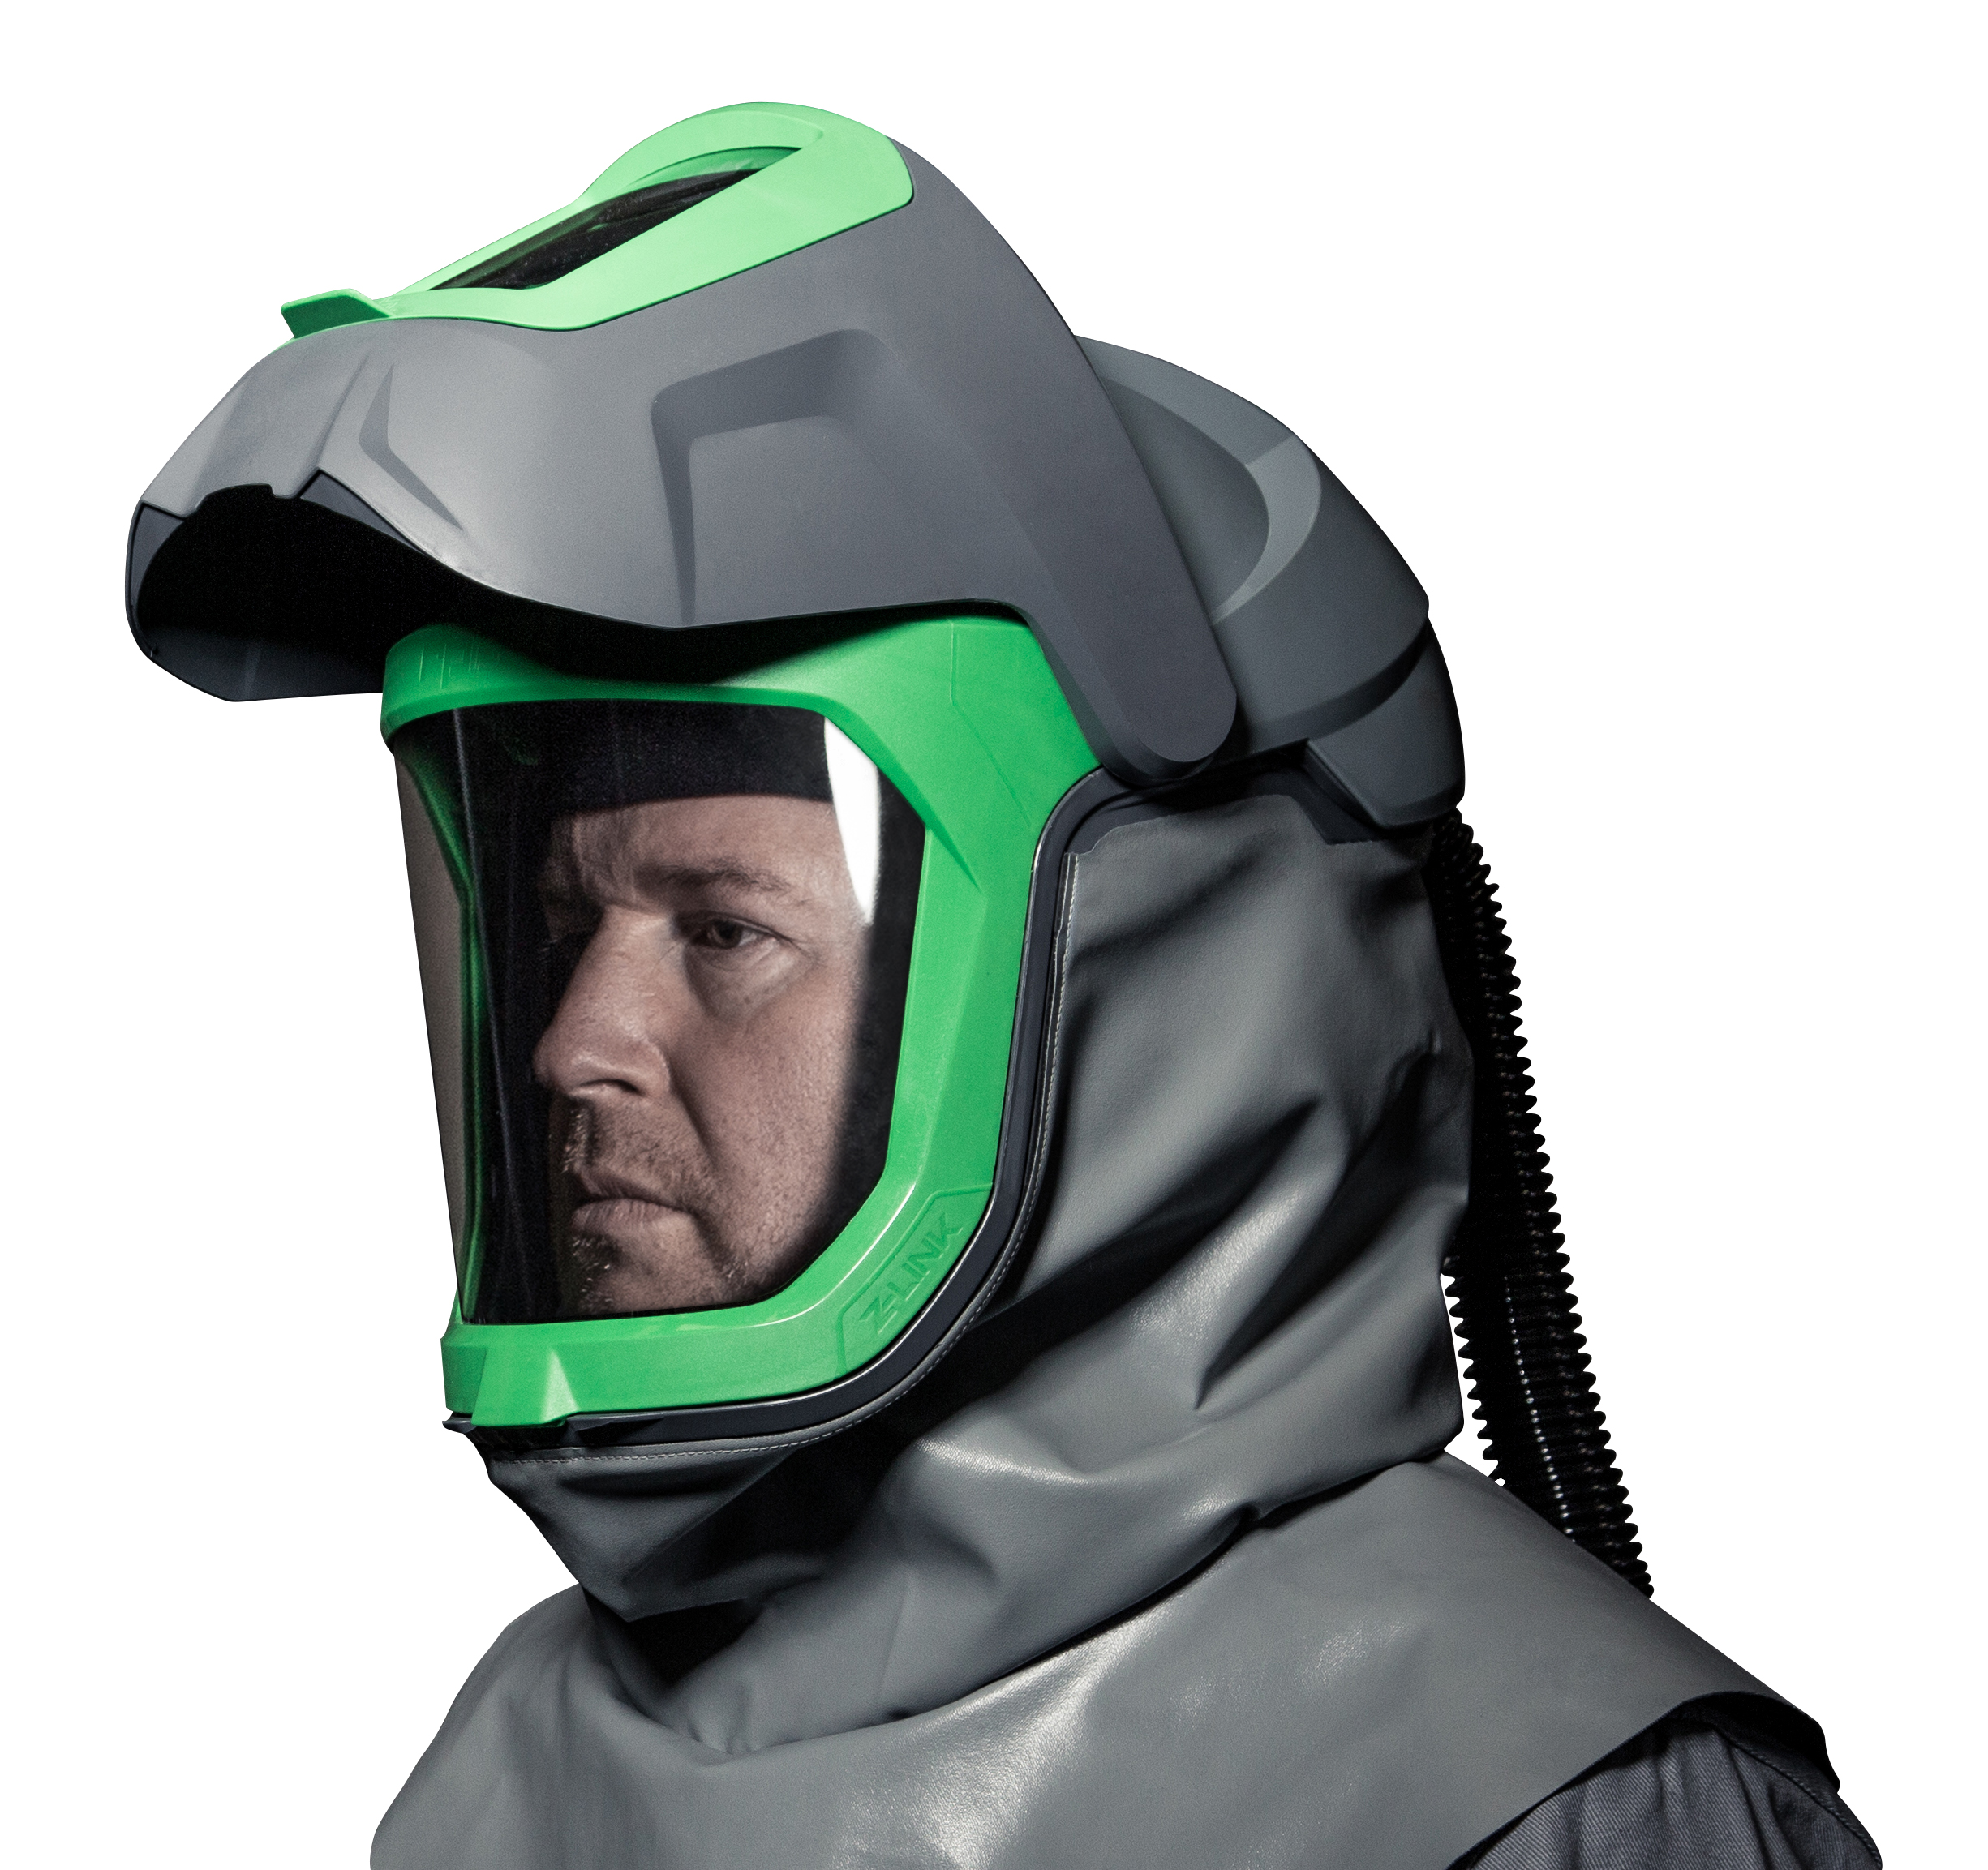 Meet the New Versatile Multi-Purpose Respirator